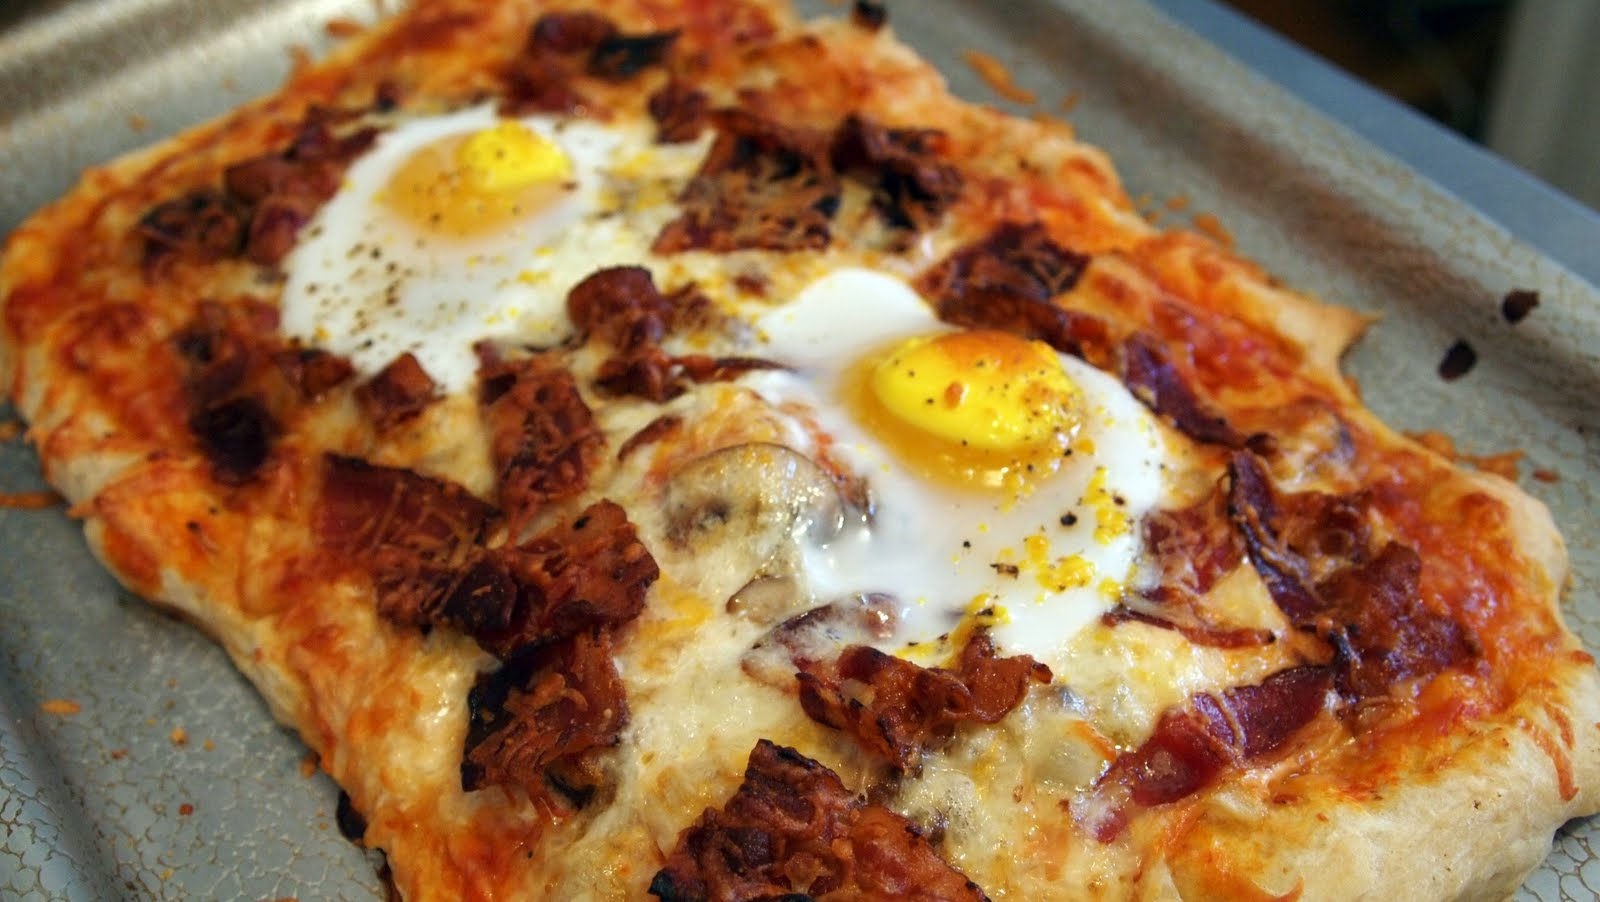 Things I Put In My Mouth: Breakfast Pizza